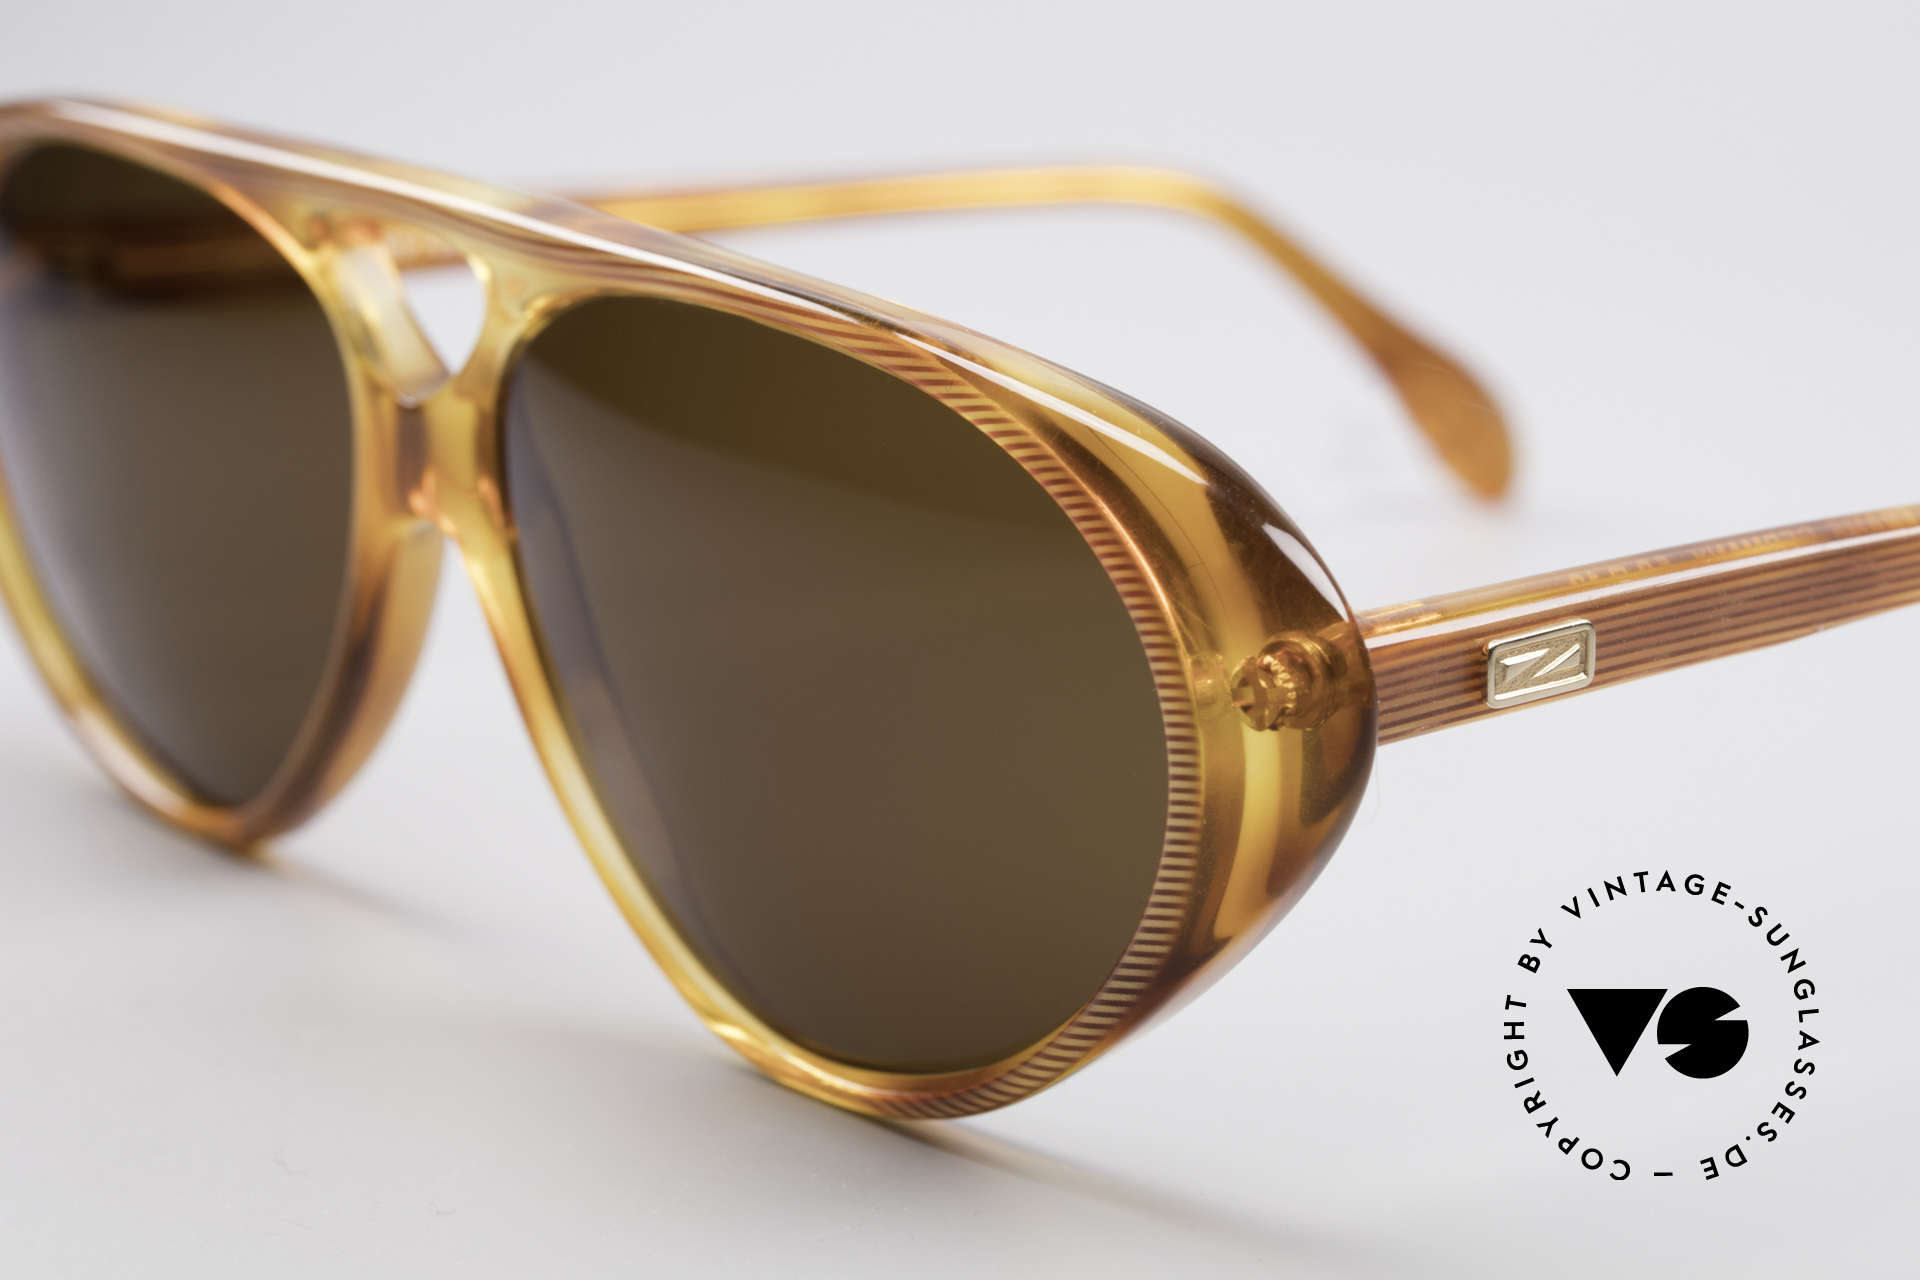 Zollitsch 178 Extraordinary Sunglasses, unworn (like all our rare vintage ZOLLITSCH models), Made for Men and Women